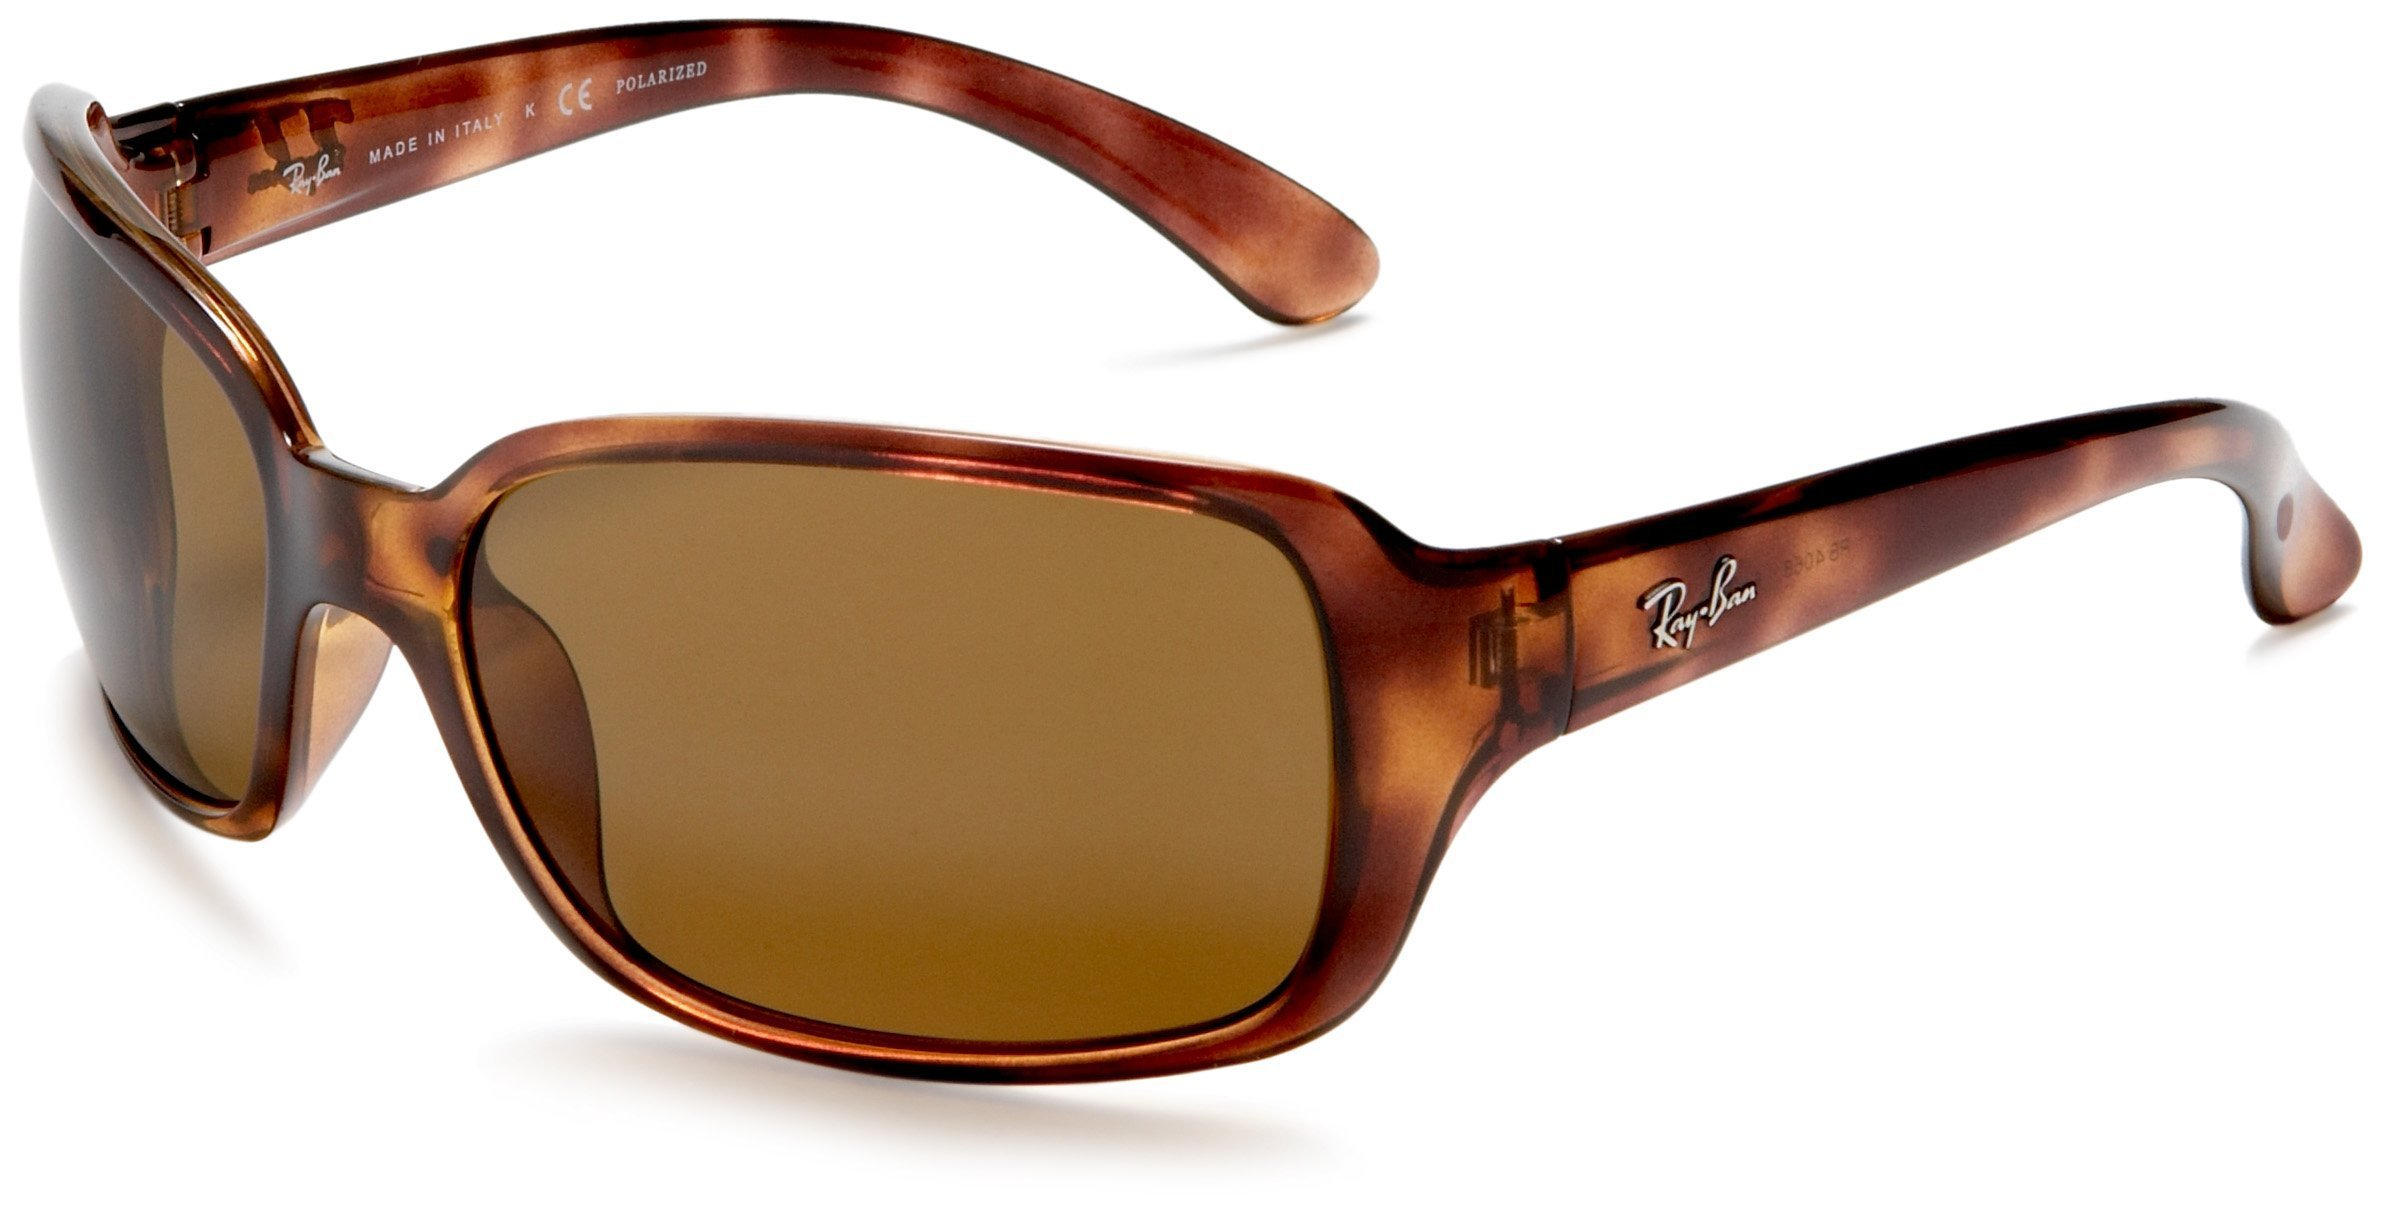 Ray-Ban RB4068 - HAVANA Frame CRYSTAL BROWN POLARIZED Lenses 60mm Polarized